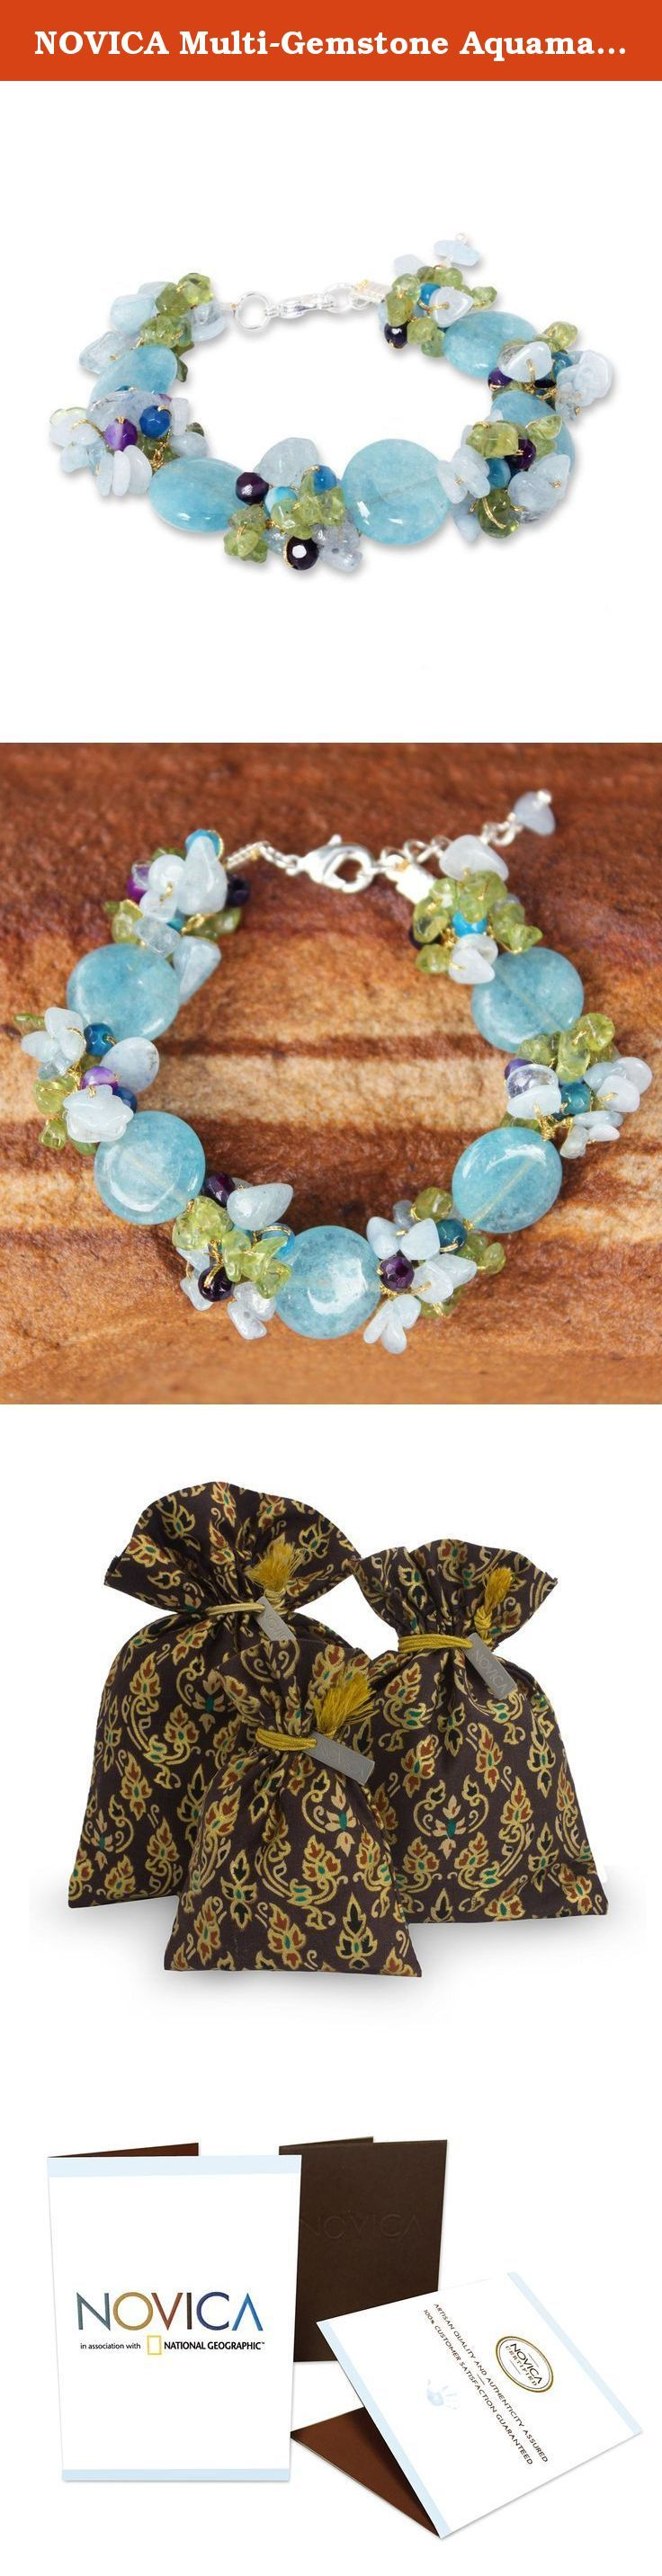 """NOVICA Multi-Gemstone Aquamarine Beaded Bracelet with Quartz, 7.75"""", 'Peony Romance'. NOVICA, in association with National Geographic, works together with talented artisan designers around the world to produce stunning, keepsake treasures. Our mantra is to spread global happiness, so rest assured - we'll do everything we possibly can to ensure you're a happy customer. About this item: Knotted by hand on silk strands, colorful gemstones envelop the wrist in beauty. Nareerat combines…"""